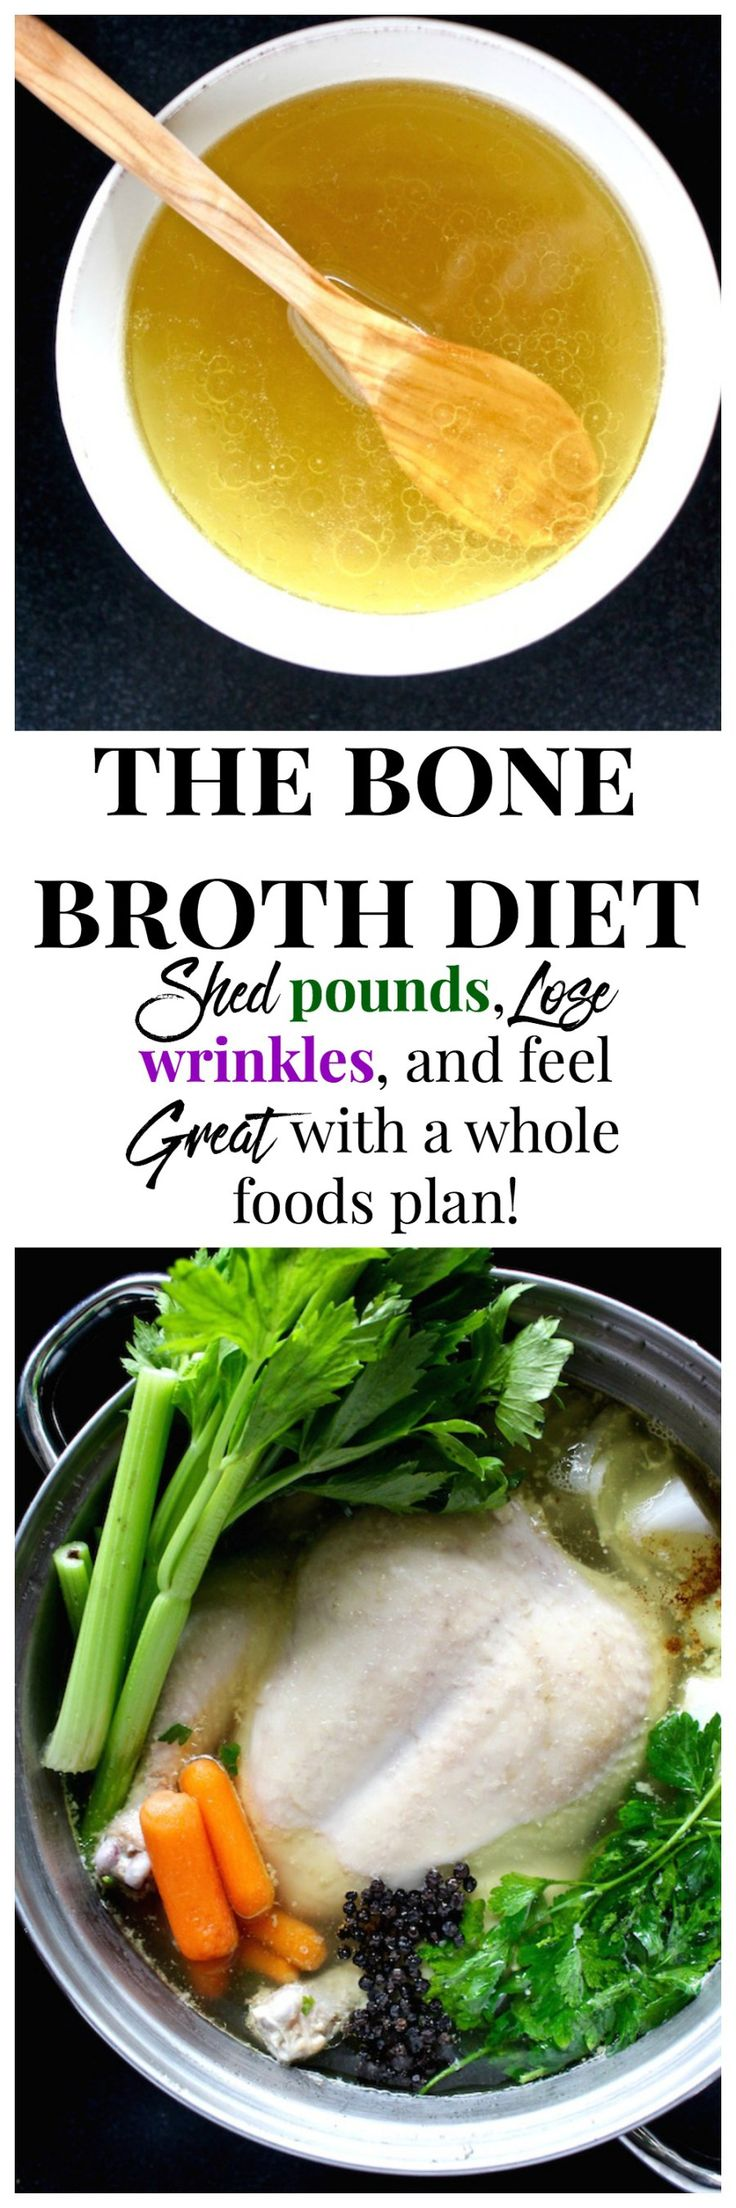 "HOW ""THE BONE BROTH DIET"" HELPS YOU SHED POUNDS & LOSE WRINKLES ACCORDING TO DR…"